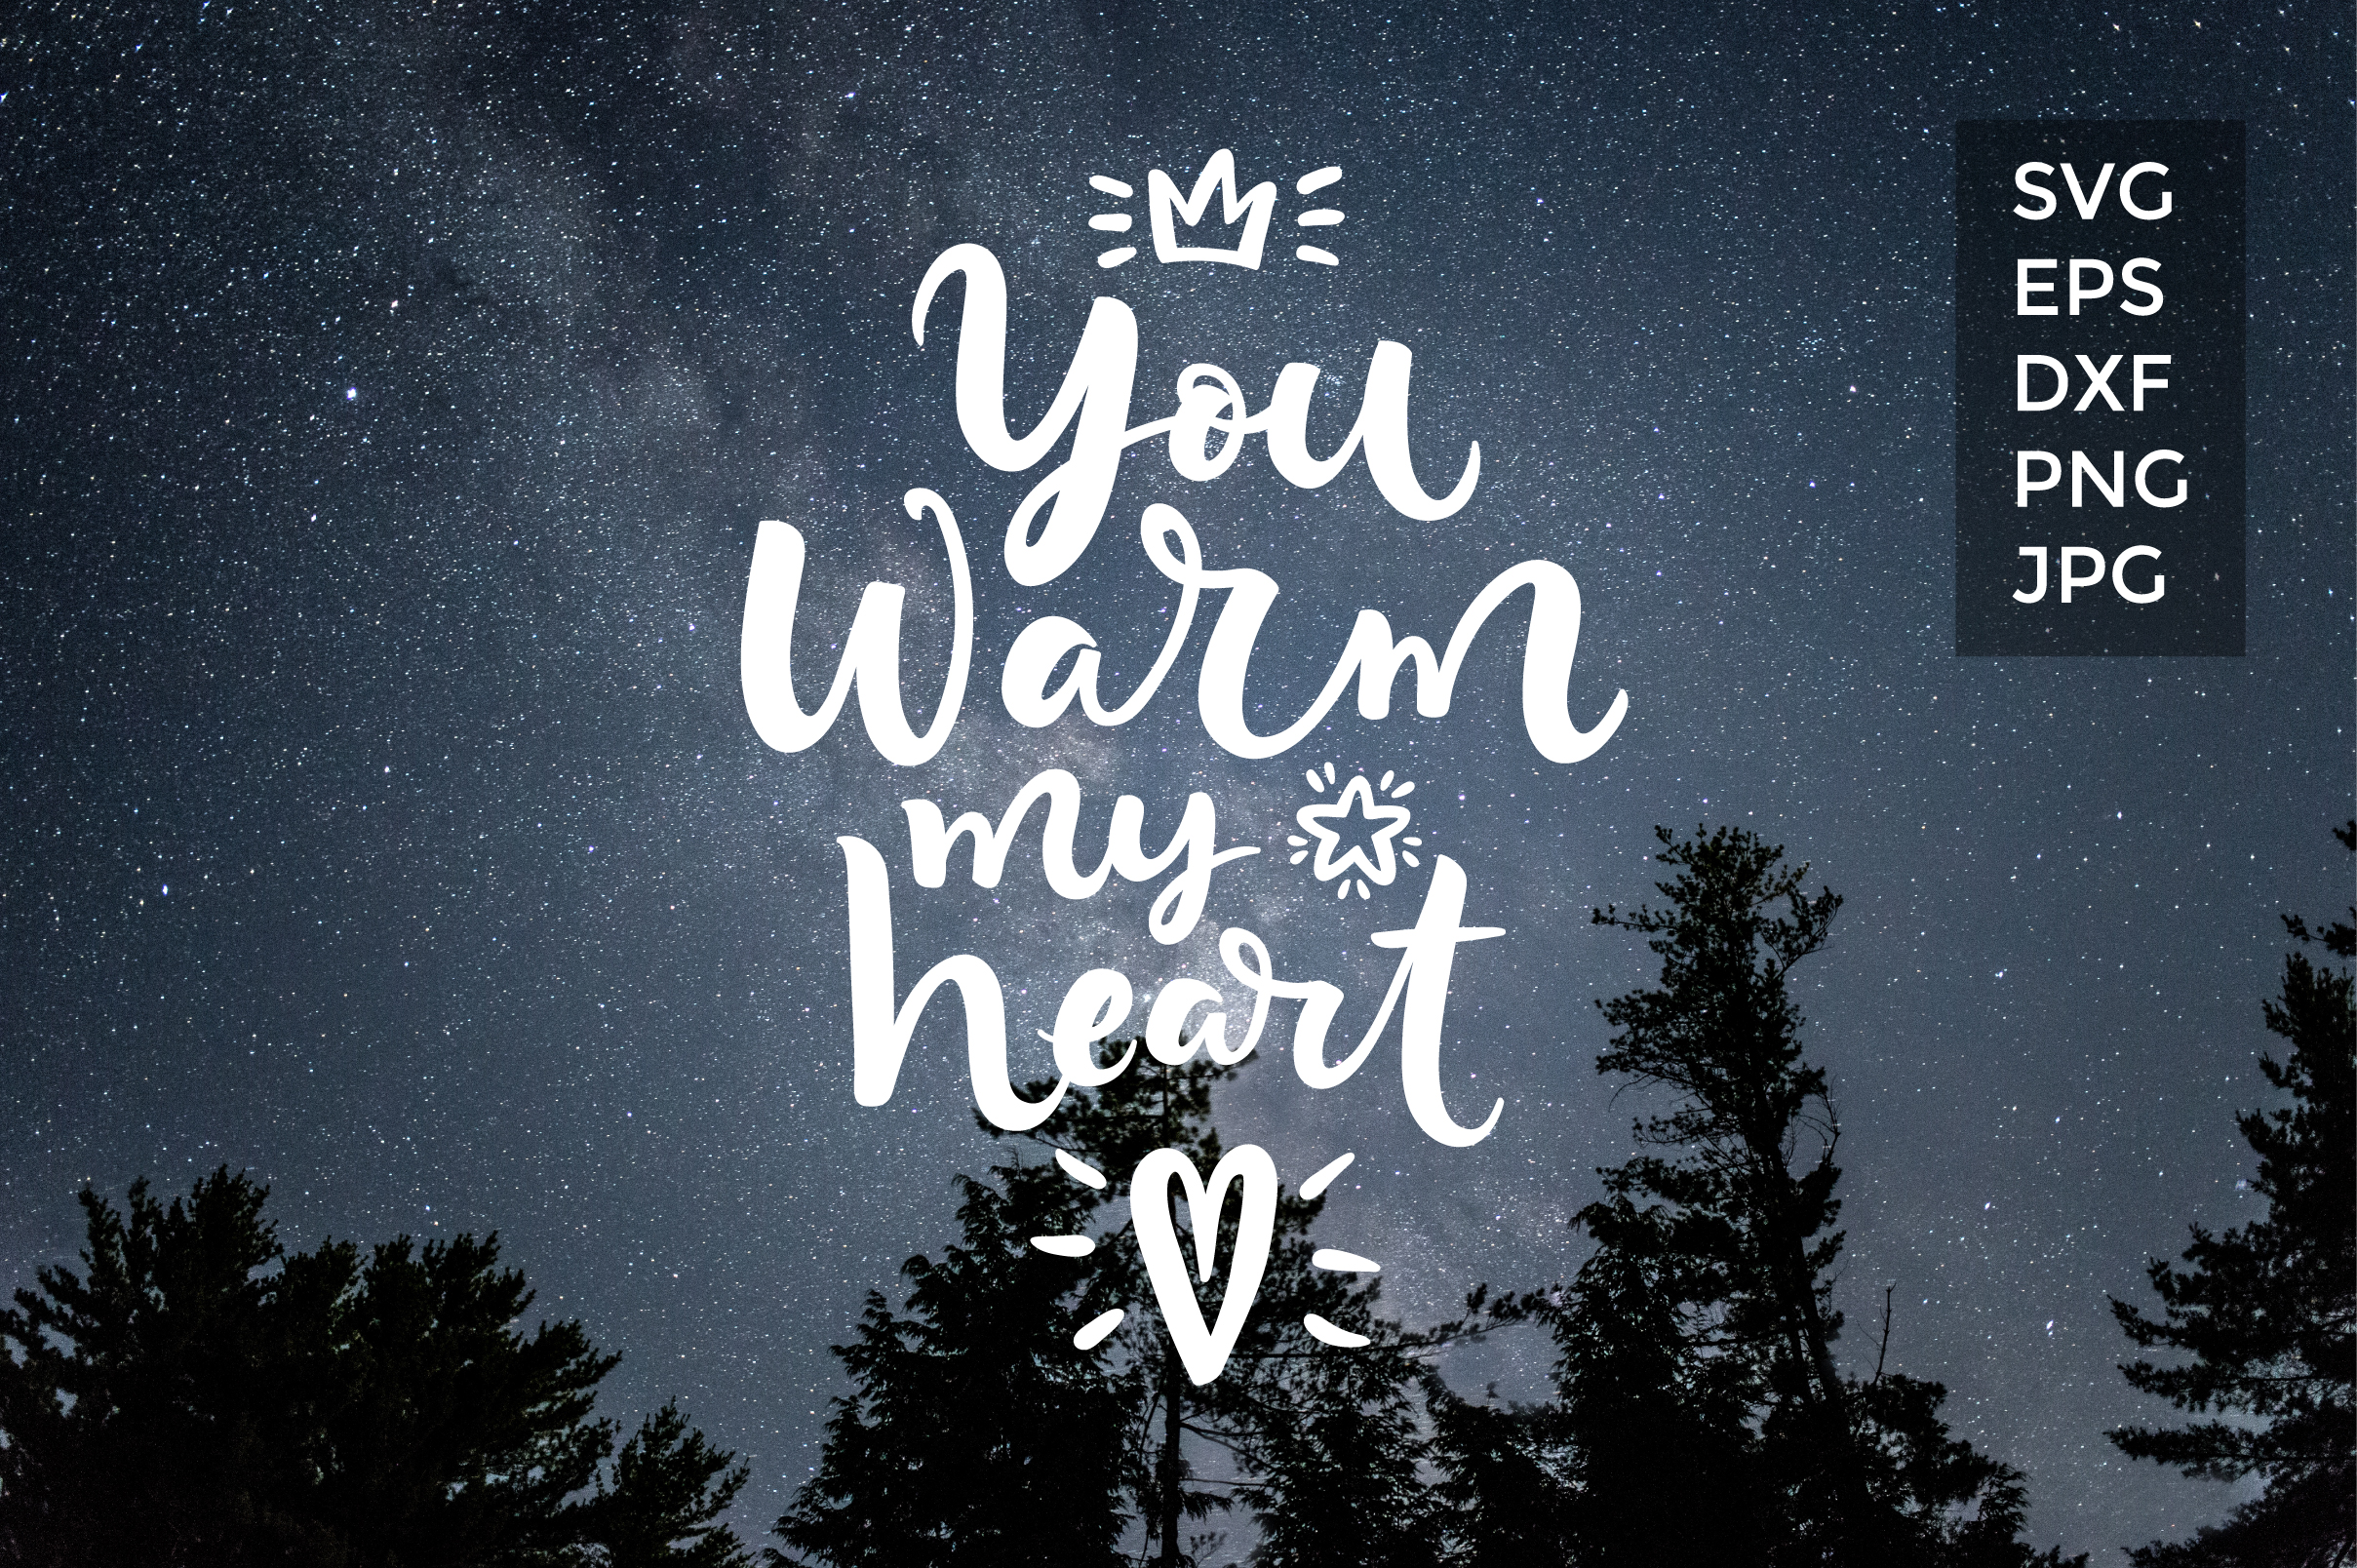 You warm my heart SVG cut file example image 2